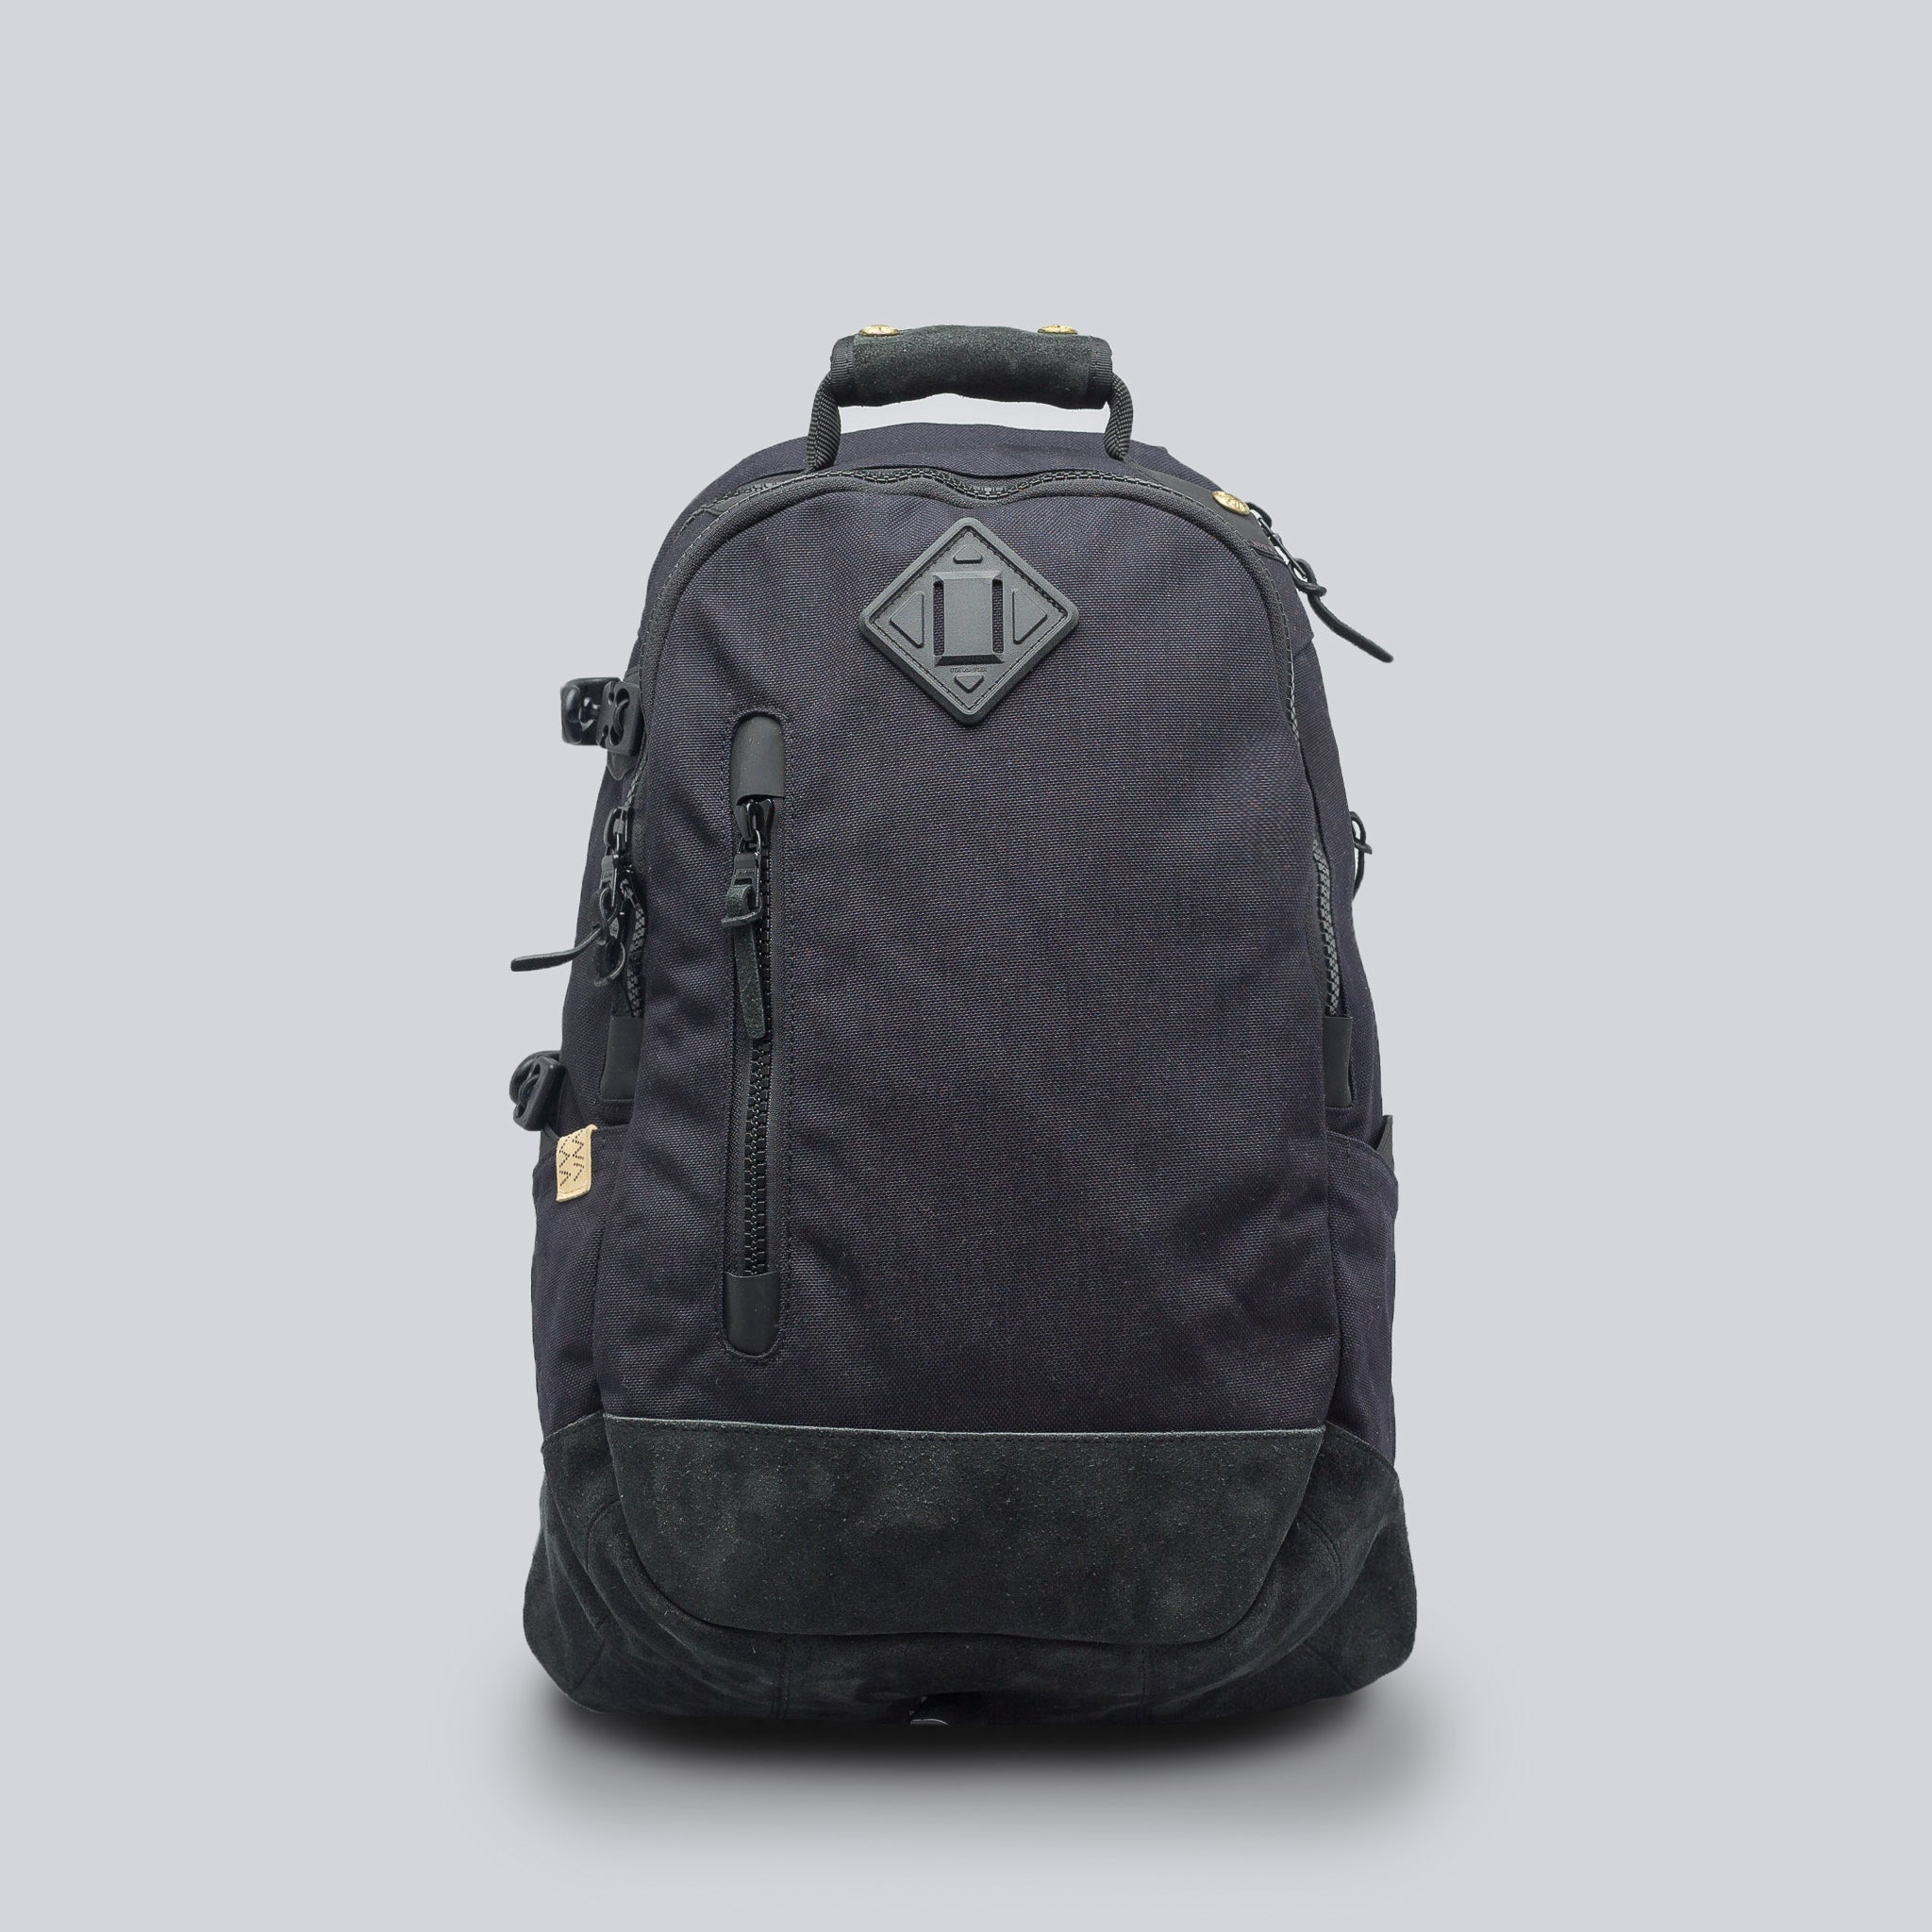 20L Cordura Backpack in Black